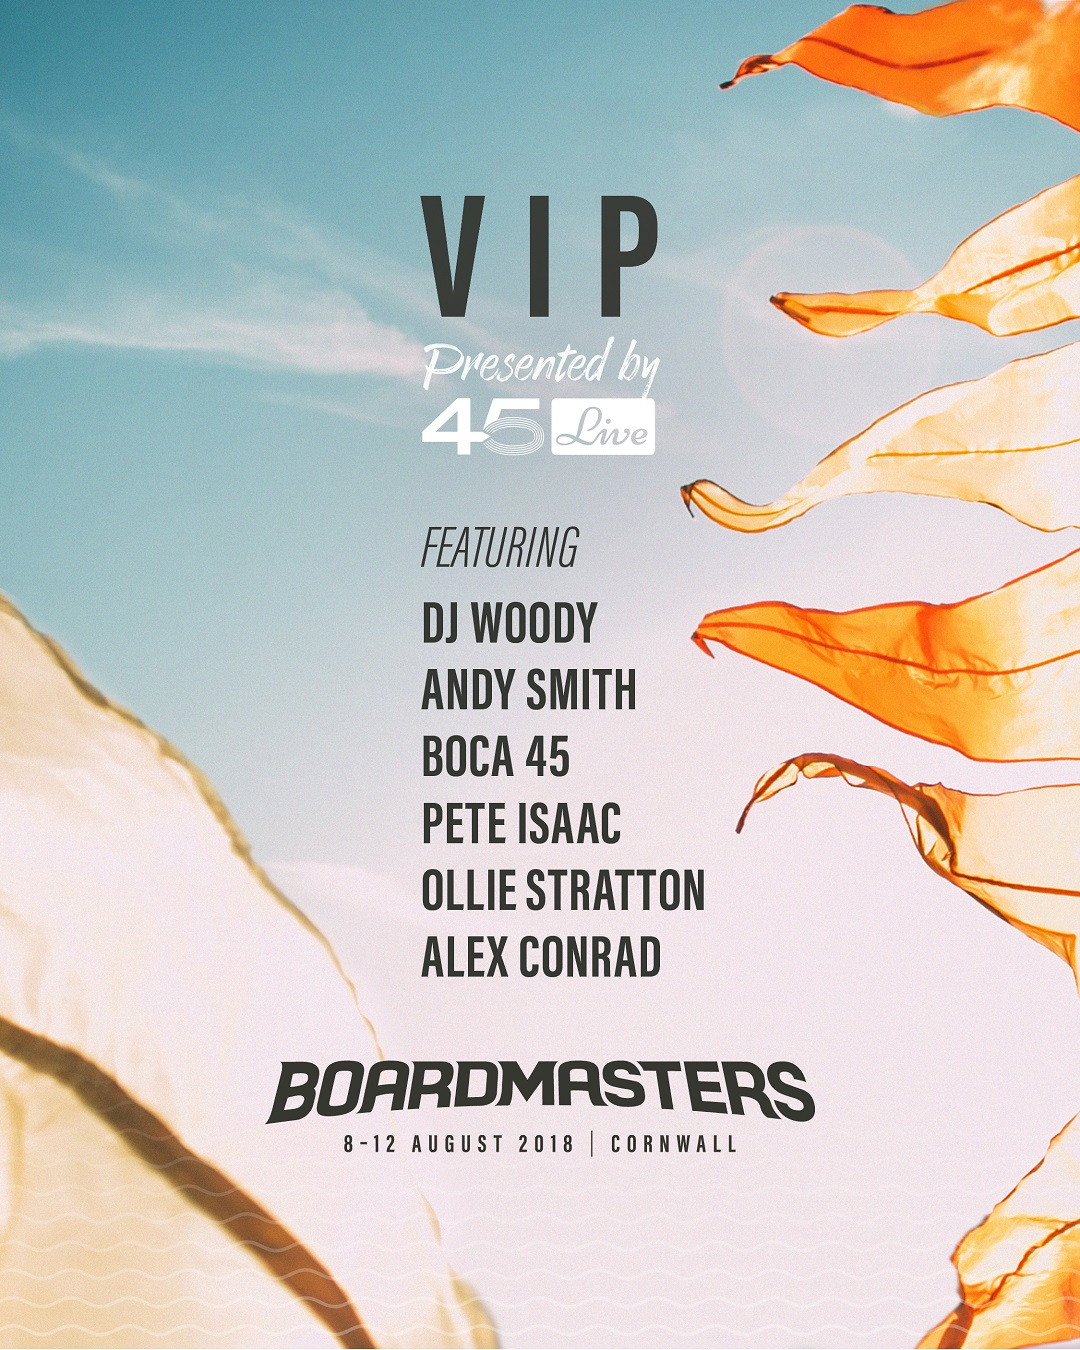 Last Chance Vip Tickets On Their Final Tier Boardmasters